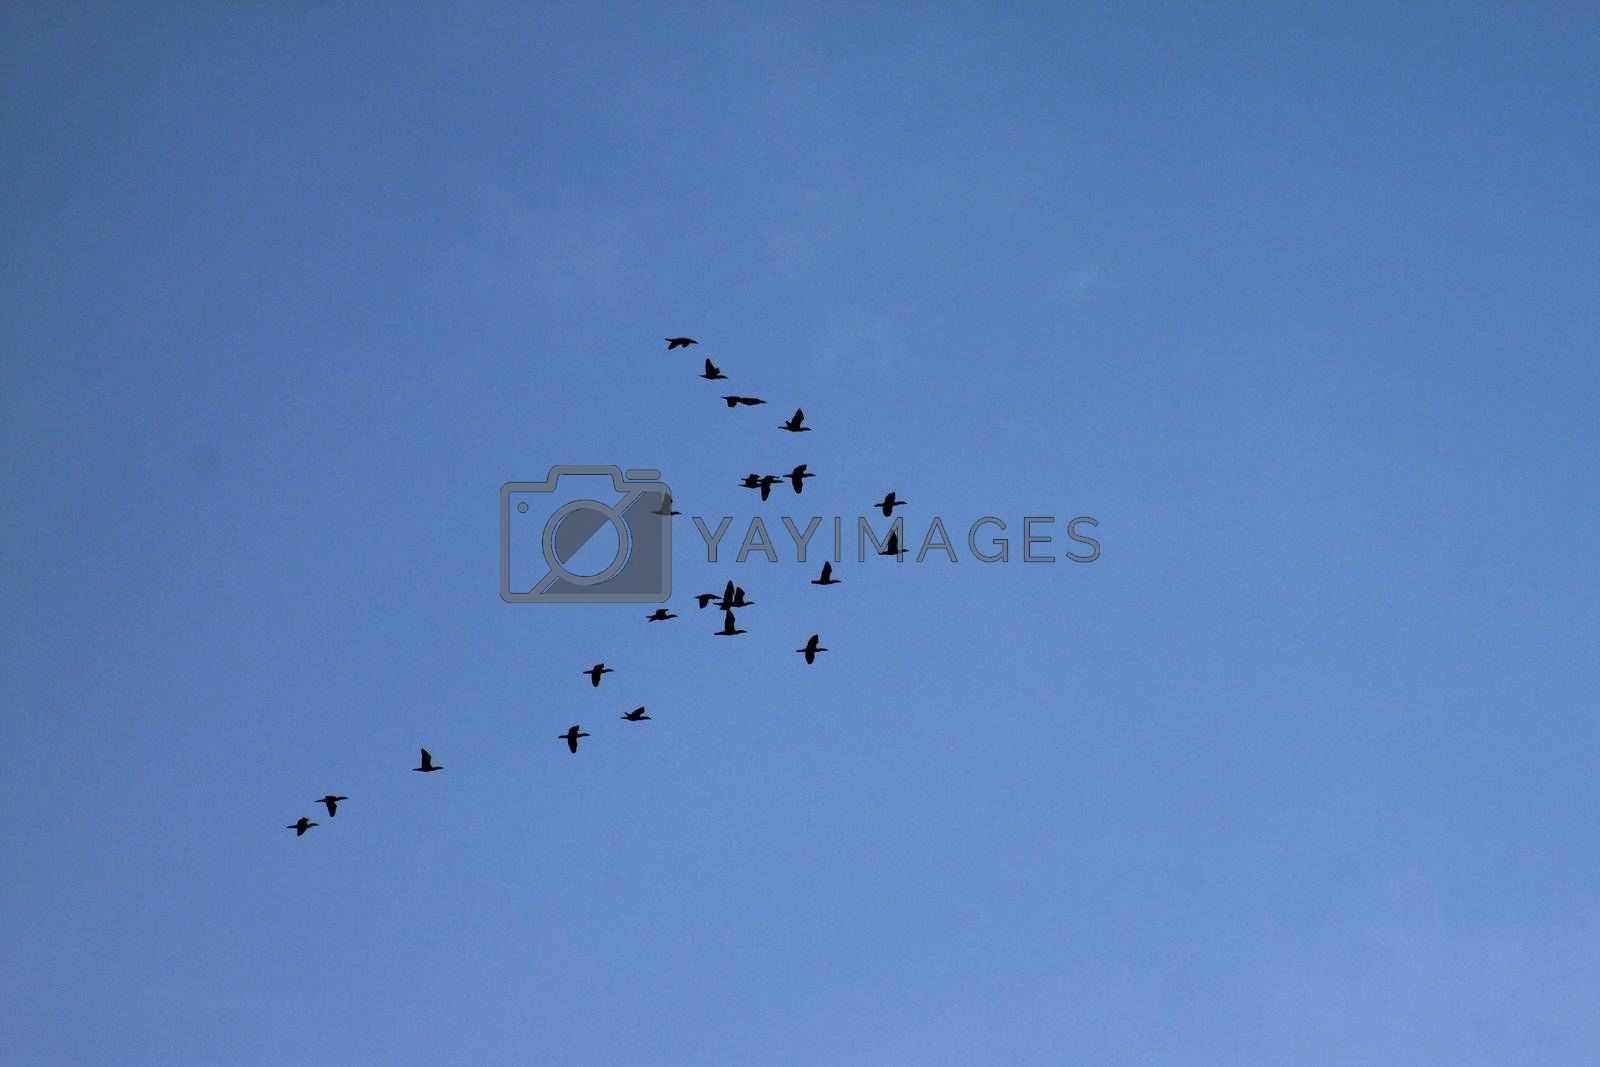 Flock of Canadian geese flying formation on a blue sky backdrop